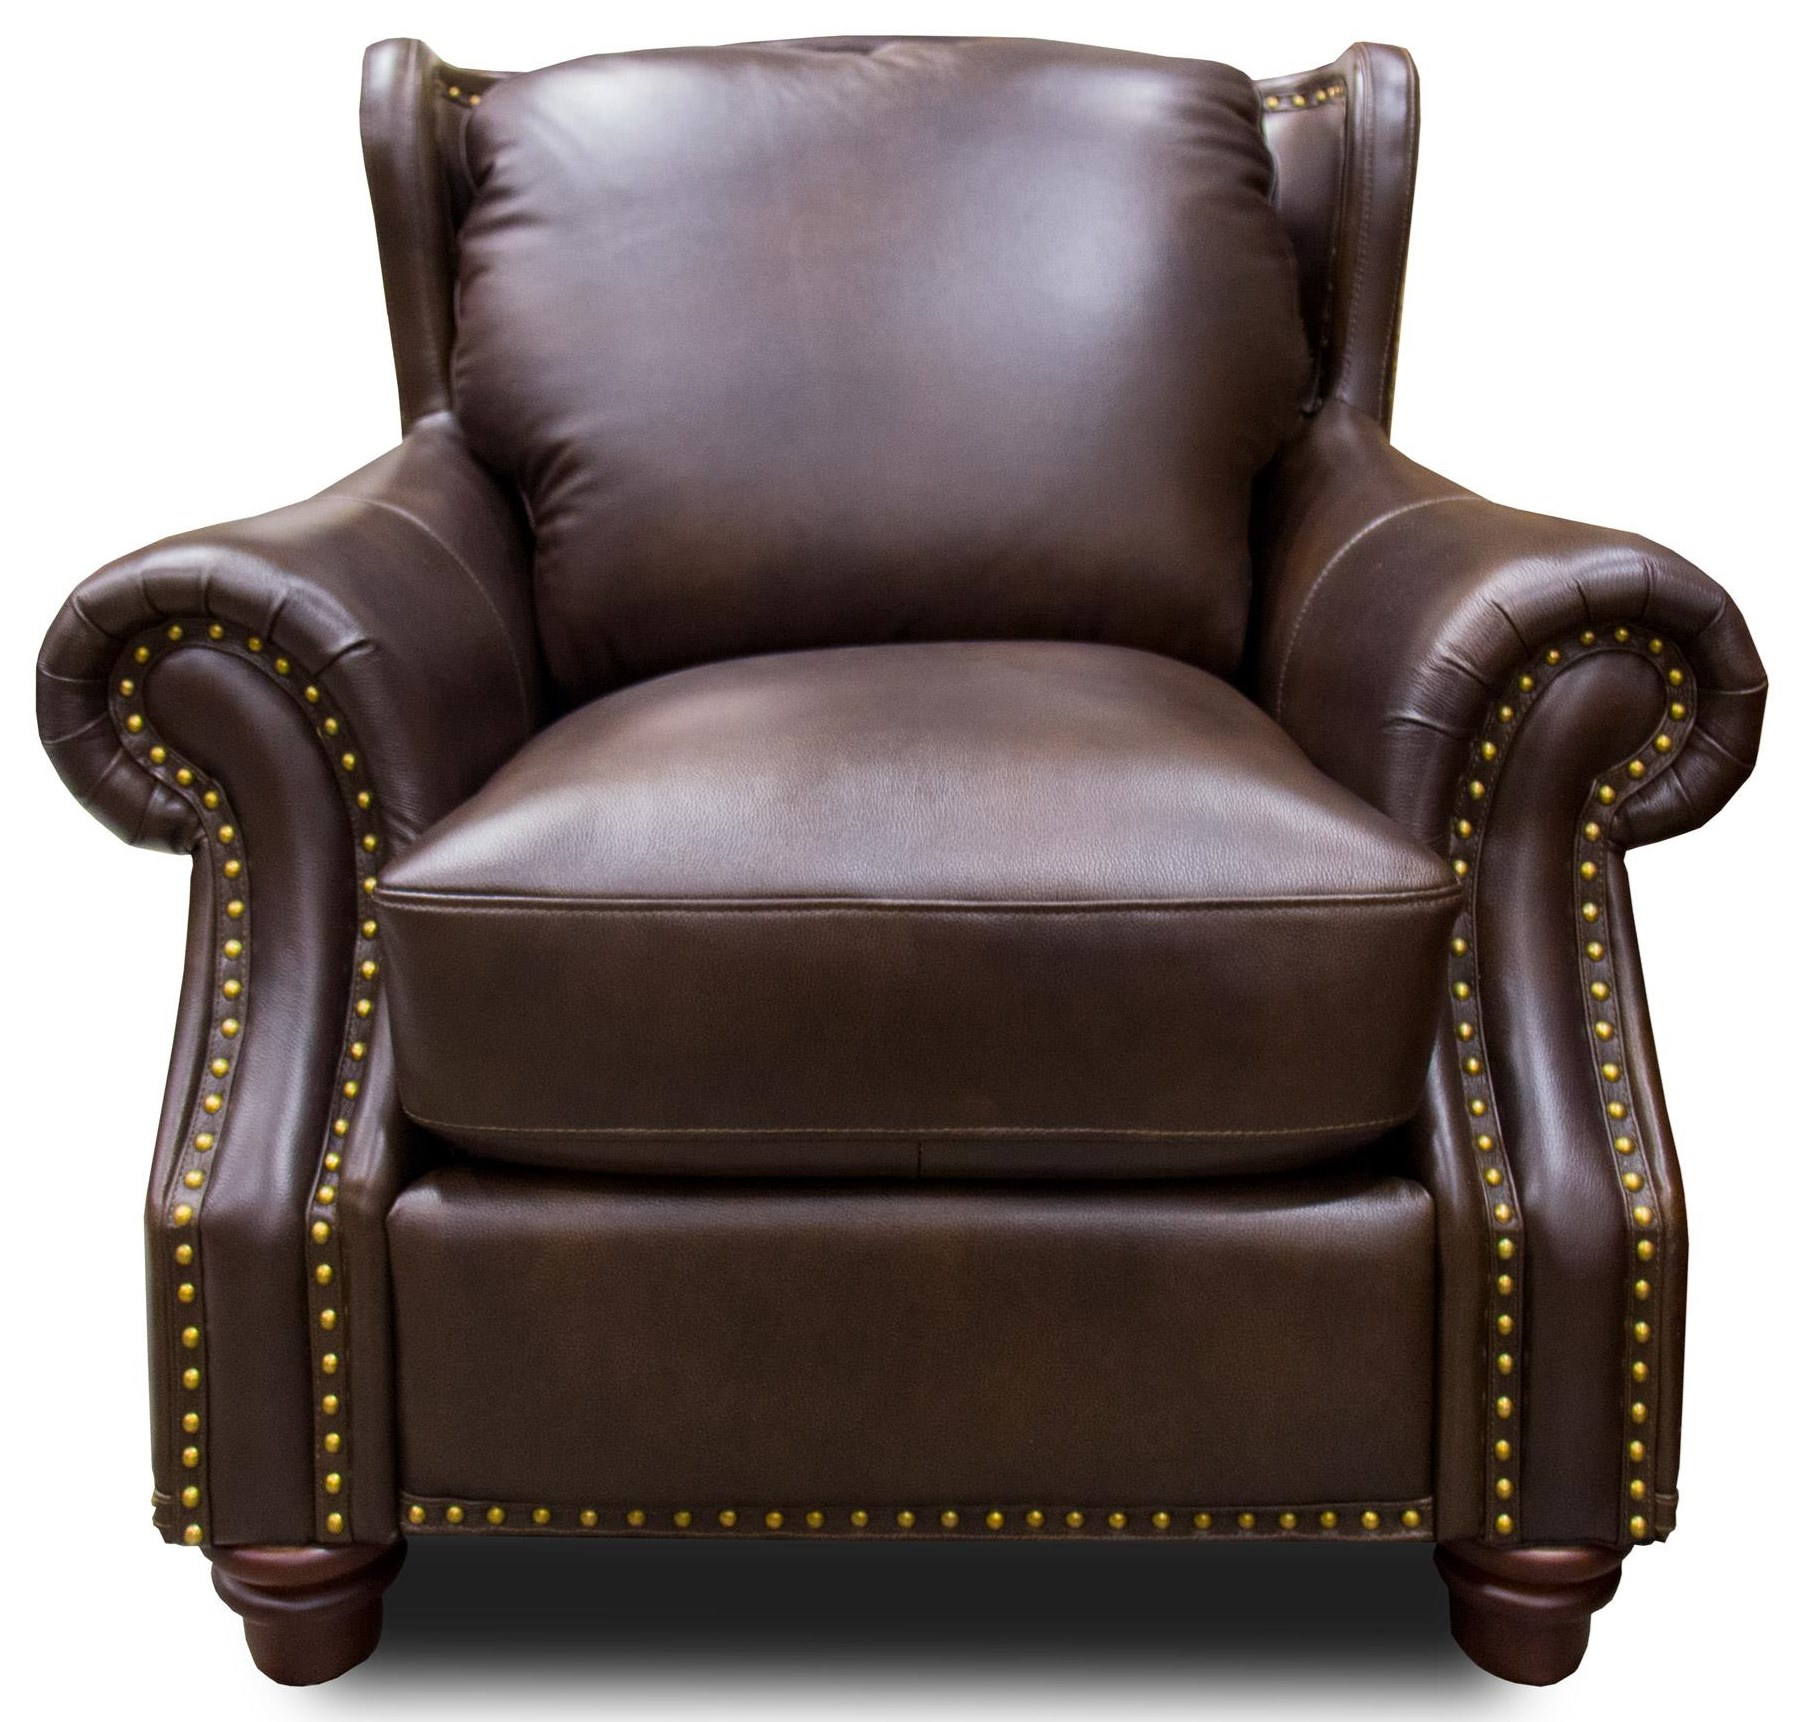 Futura Leather Rancho Mountain Leather Chair - Item Number: 7031-CHAIR-1431S